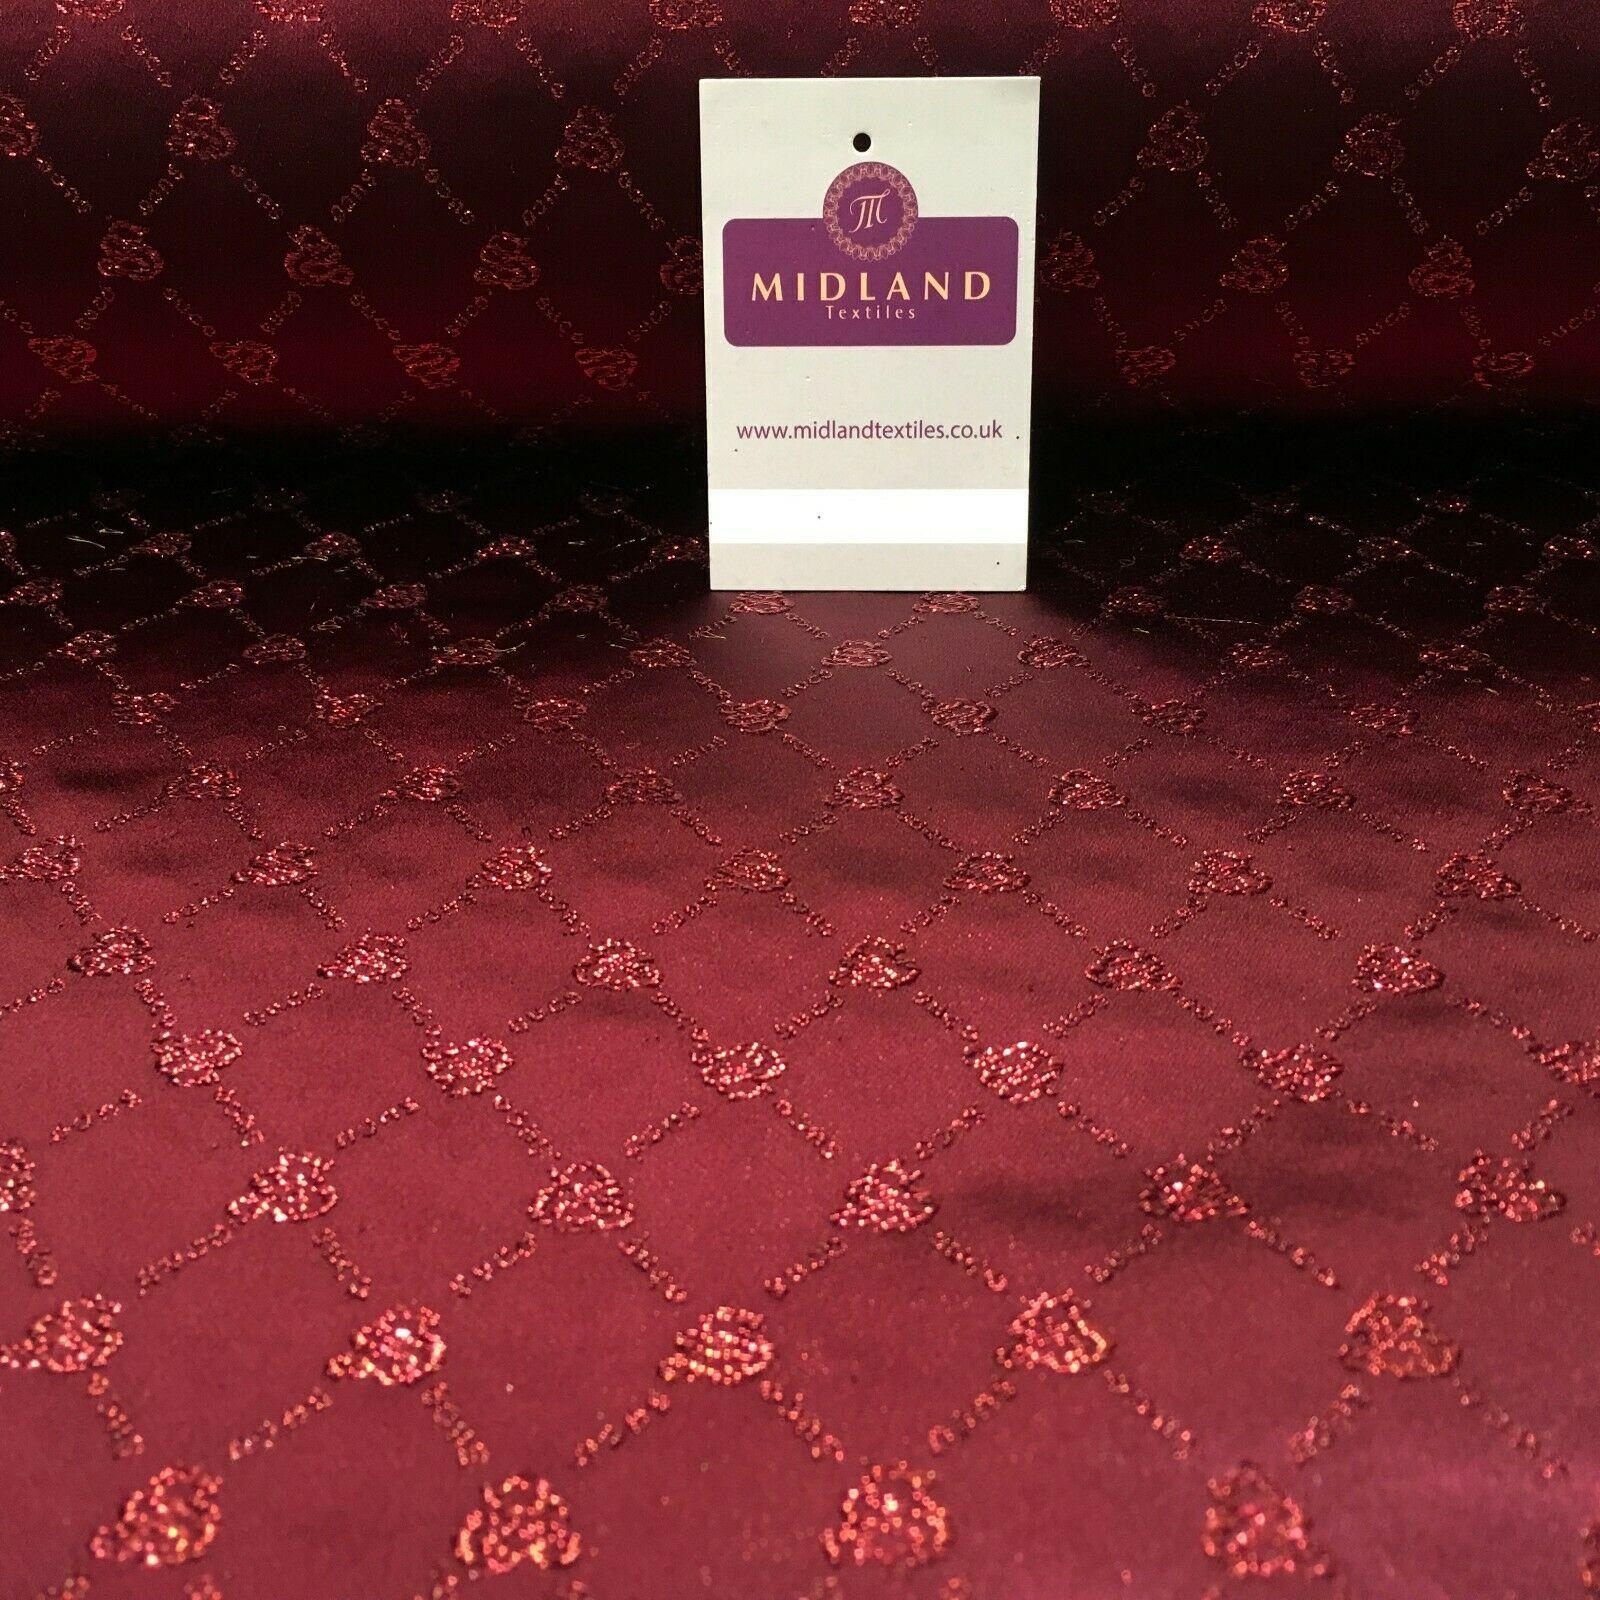 Maroon Glitter Chinese Brocade Satin Waistcoat Dress Fabric 110cm Wide M395-28